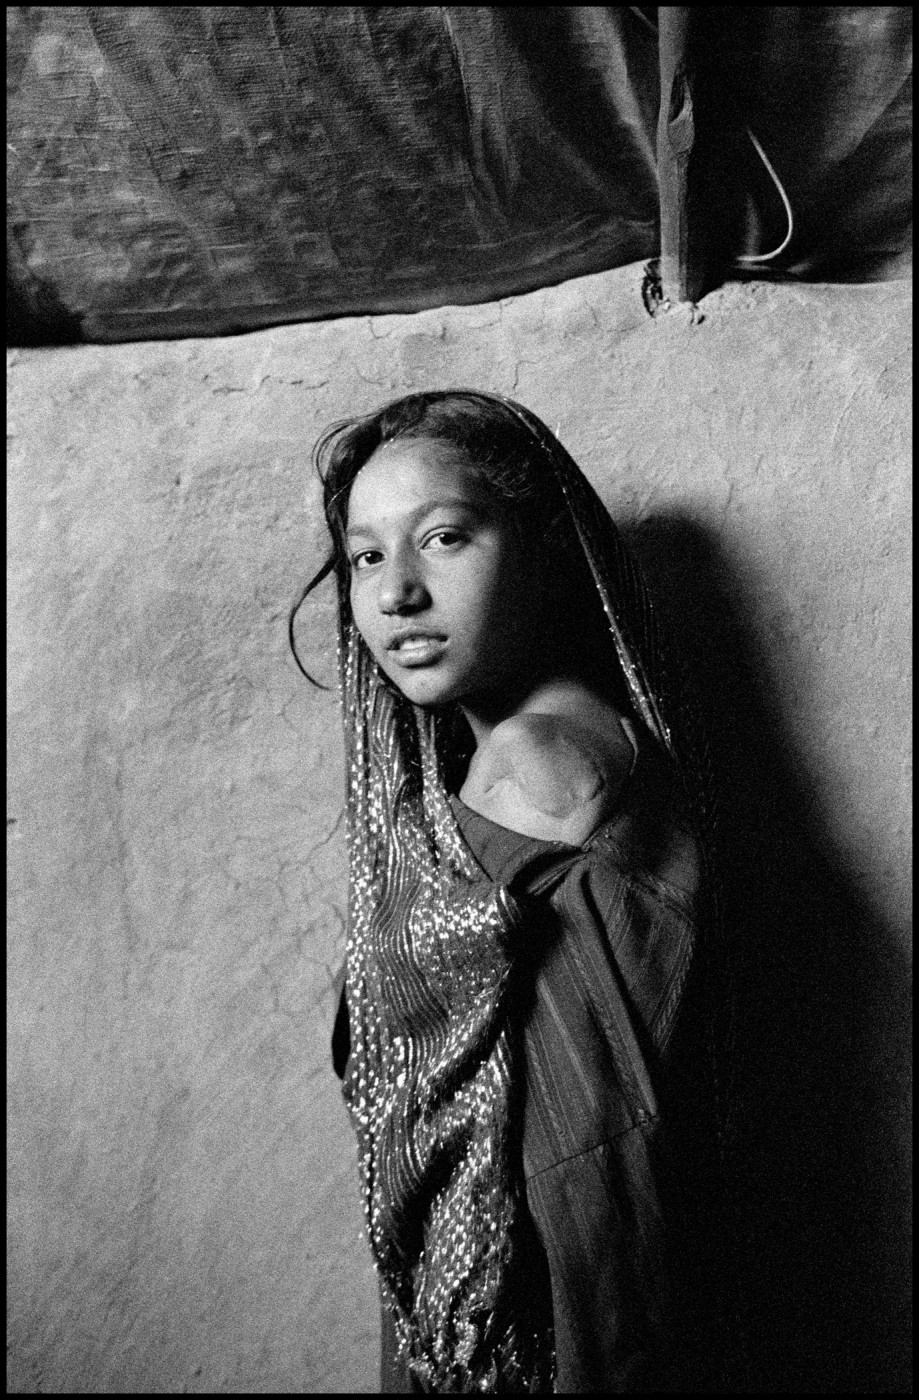 Larry Towell, </span><span><em>Ten year old Gul Juma lost her arm as well as relatives during the bombing of Helmand Province</em>, </span><span>&lt;em&gt;Charahi Qambar Refugee Camp, Kabul, Afghanistan &lt;/em&gt; © Larry Towell/Magnum Photos